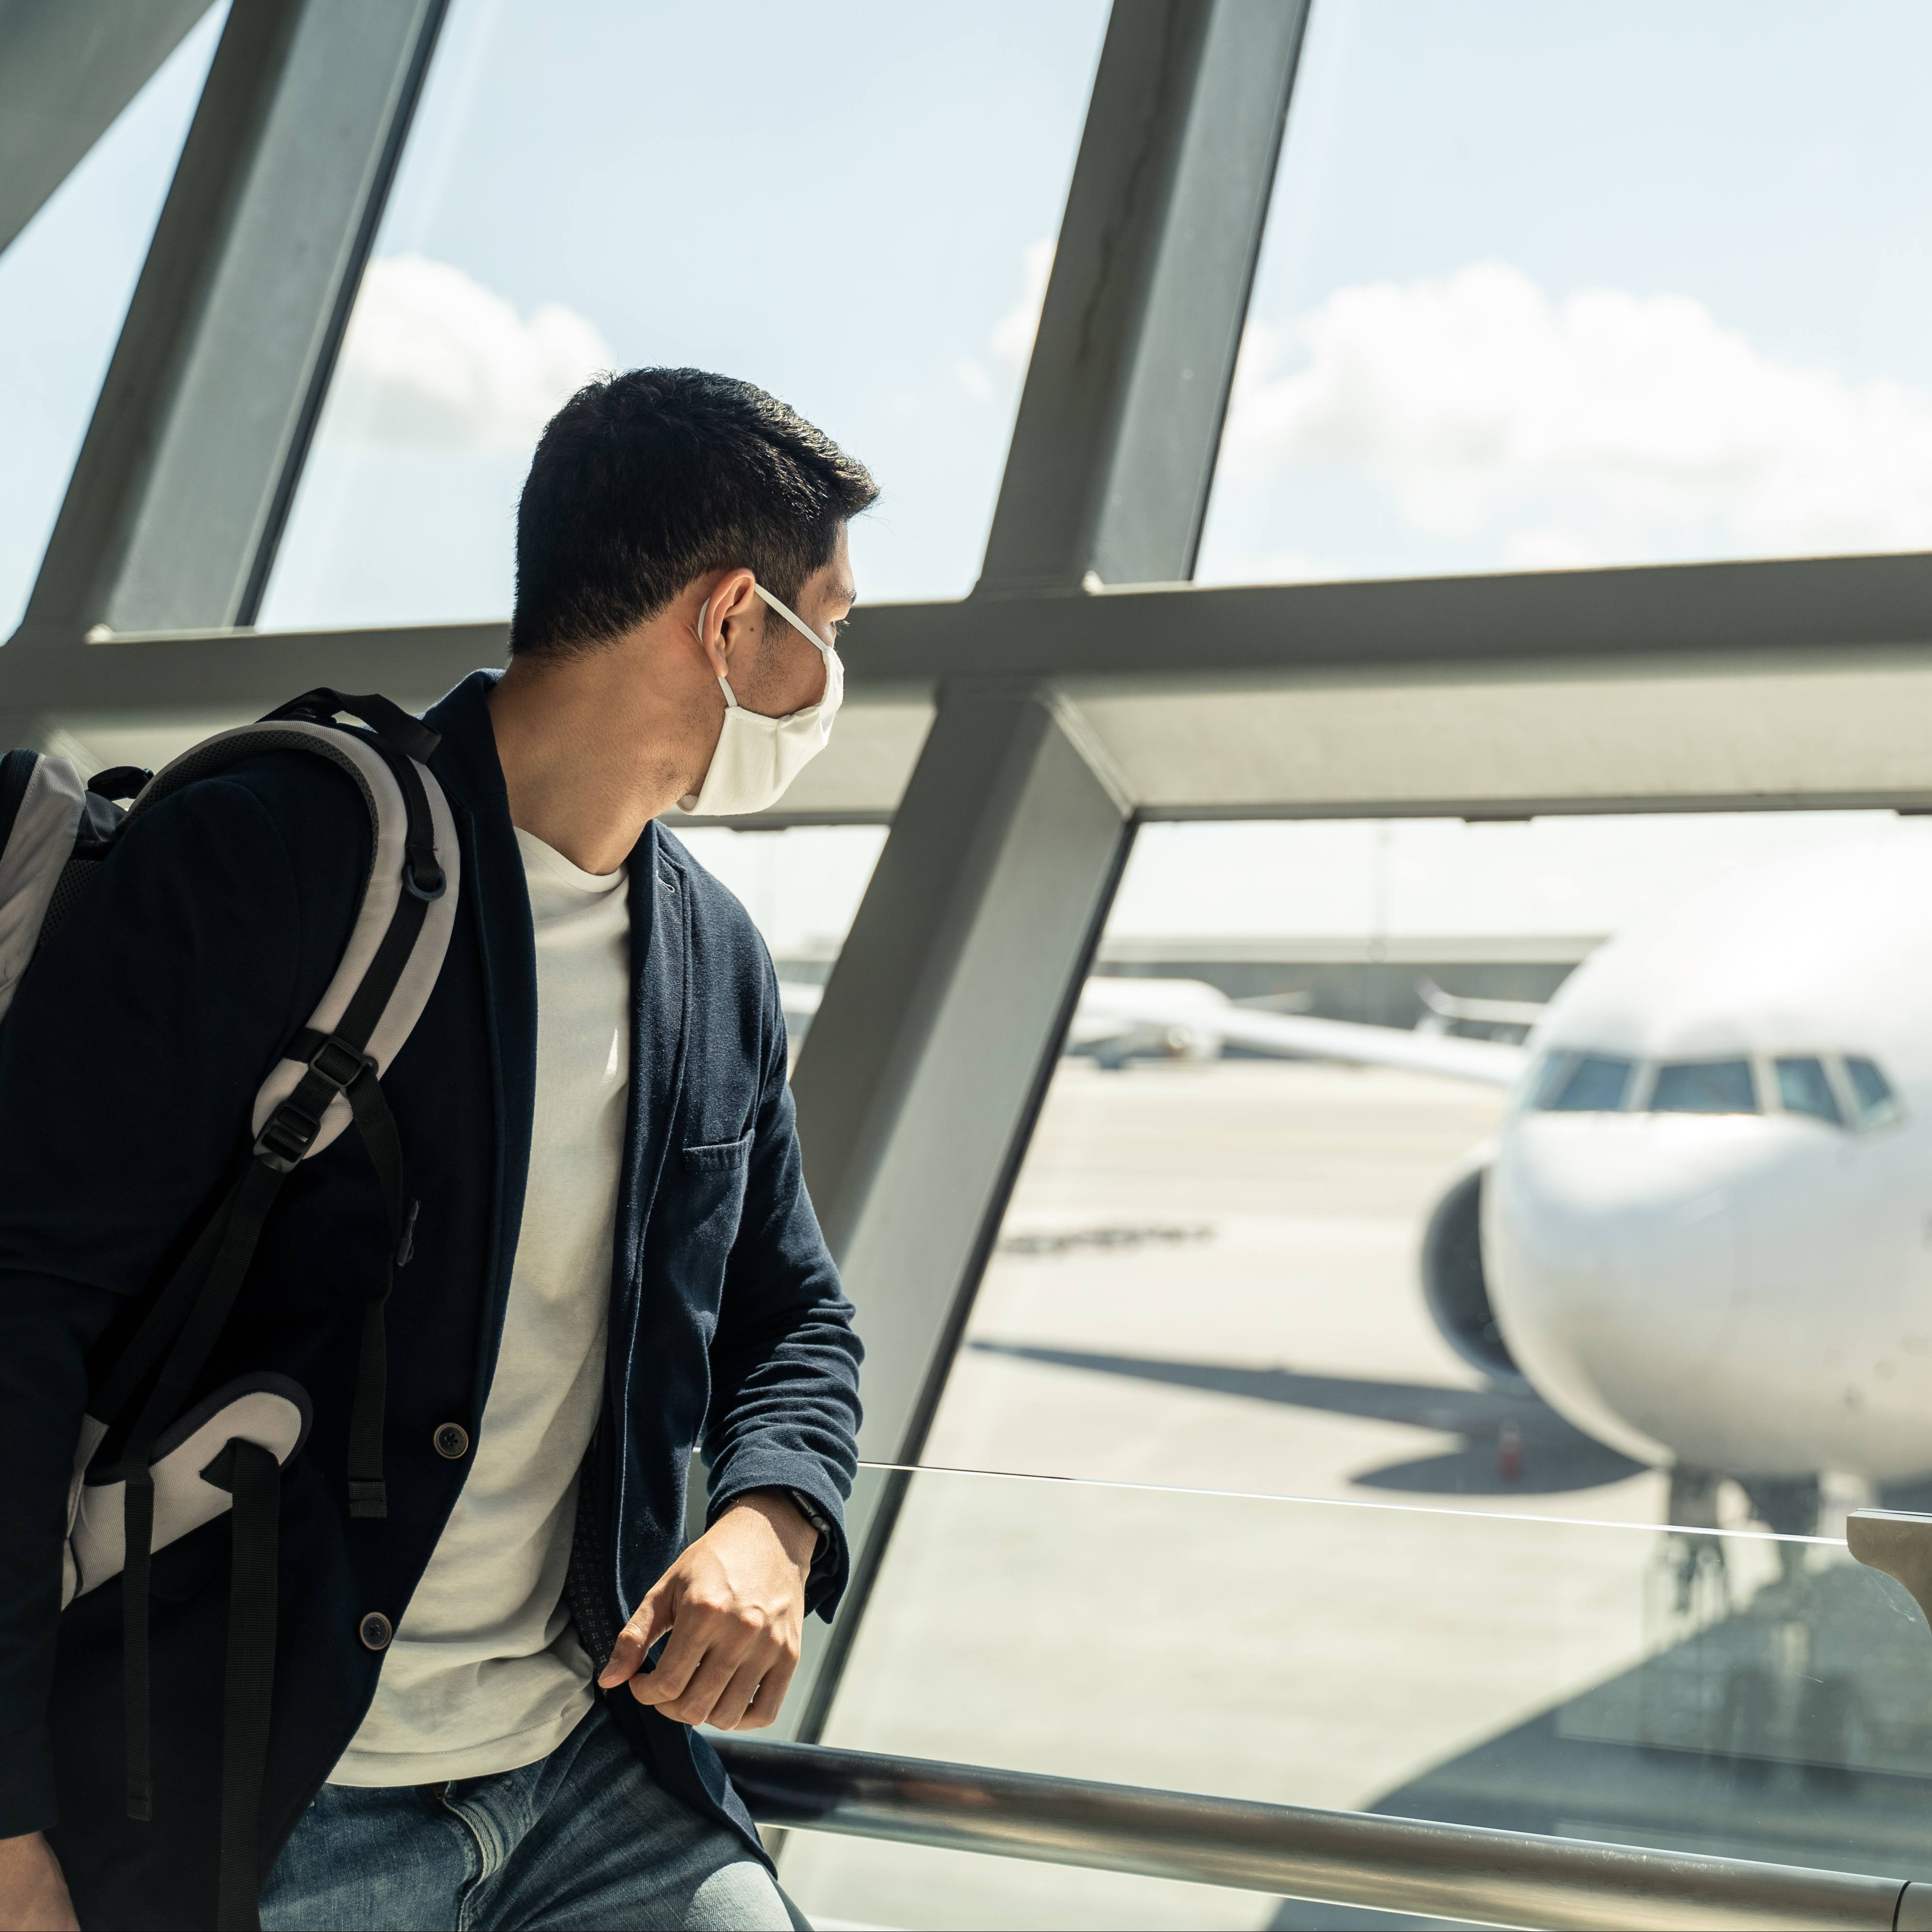 a young white, perhaps college aged man, wearing a back pack and a face mask, in an airport looking like he's ready to travel and watching an airplane out a window.